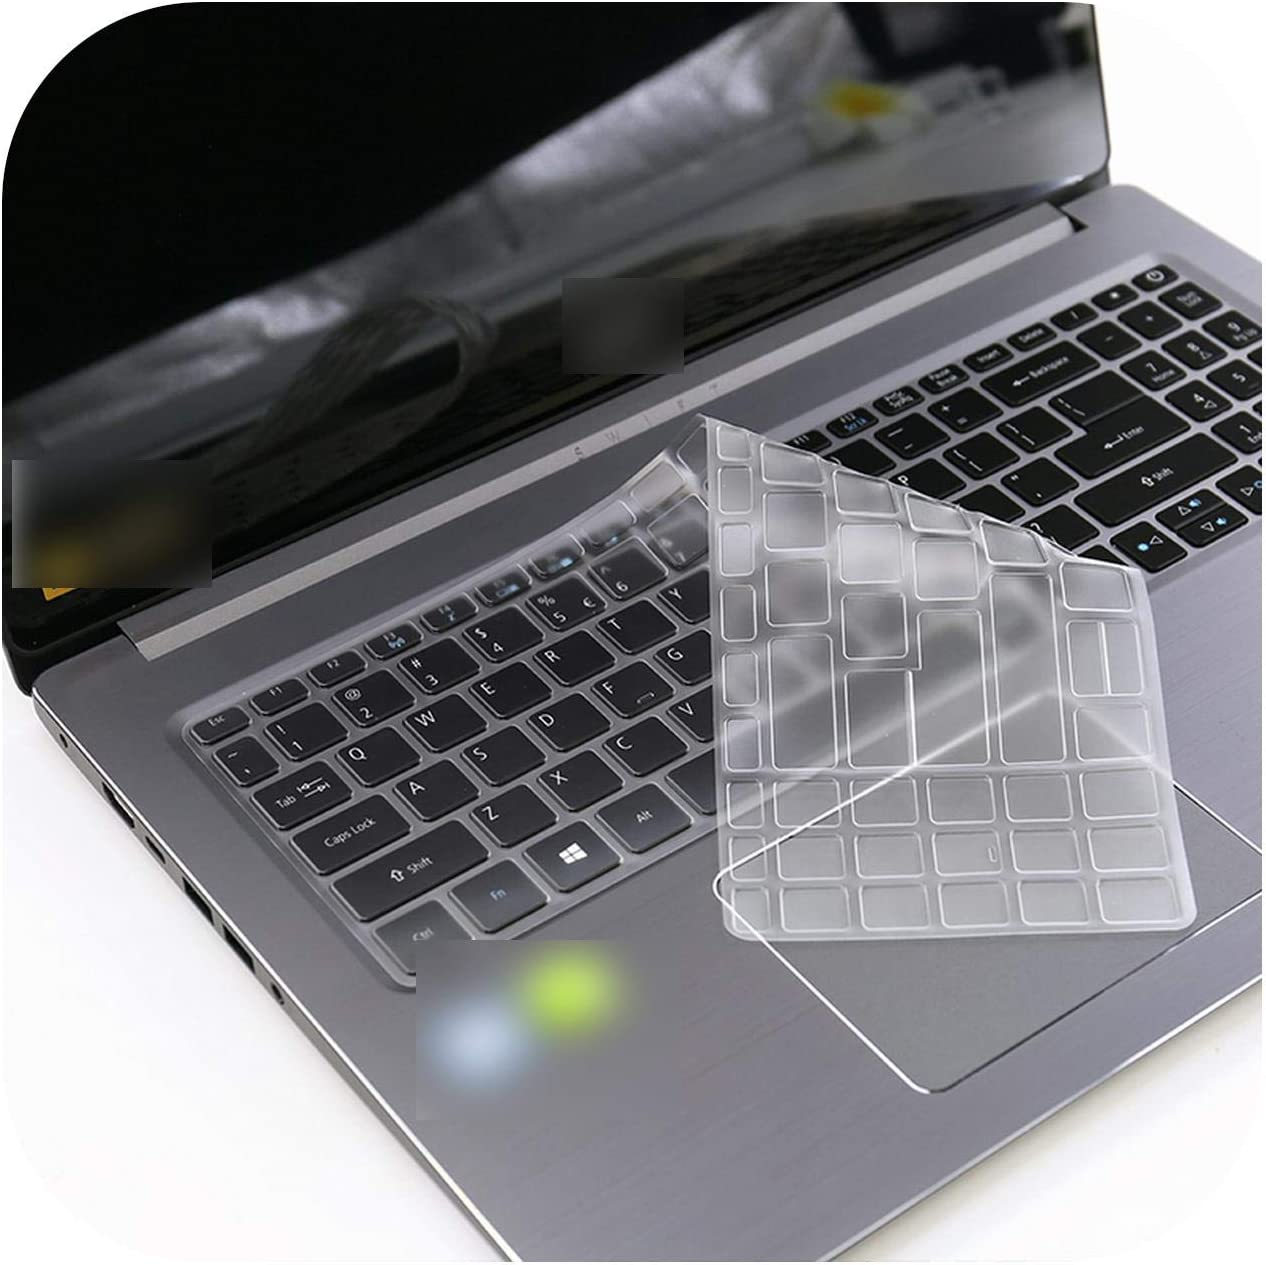 Laptop Notebook Keyboard Cover Skin for Acer Aspire 5 A515 52 A515 52G A515 52K A515 52Kg A515 53G A515 54 A515 54G 15.6''-TPU-